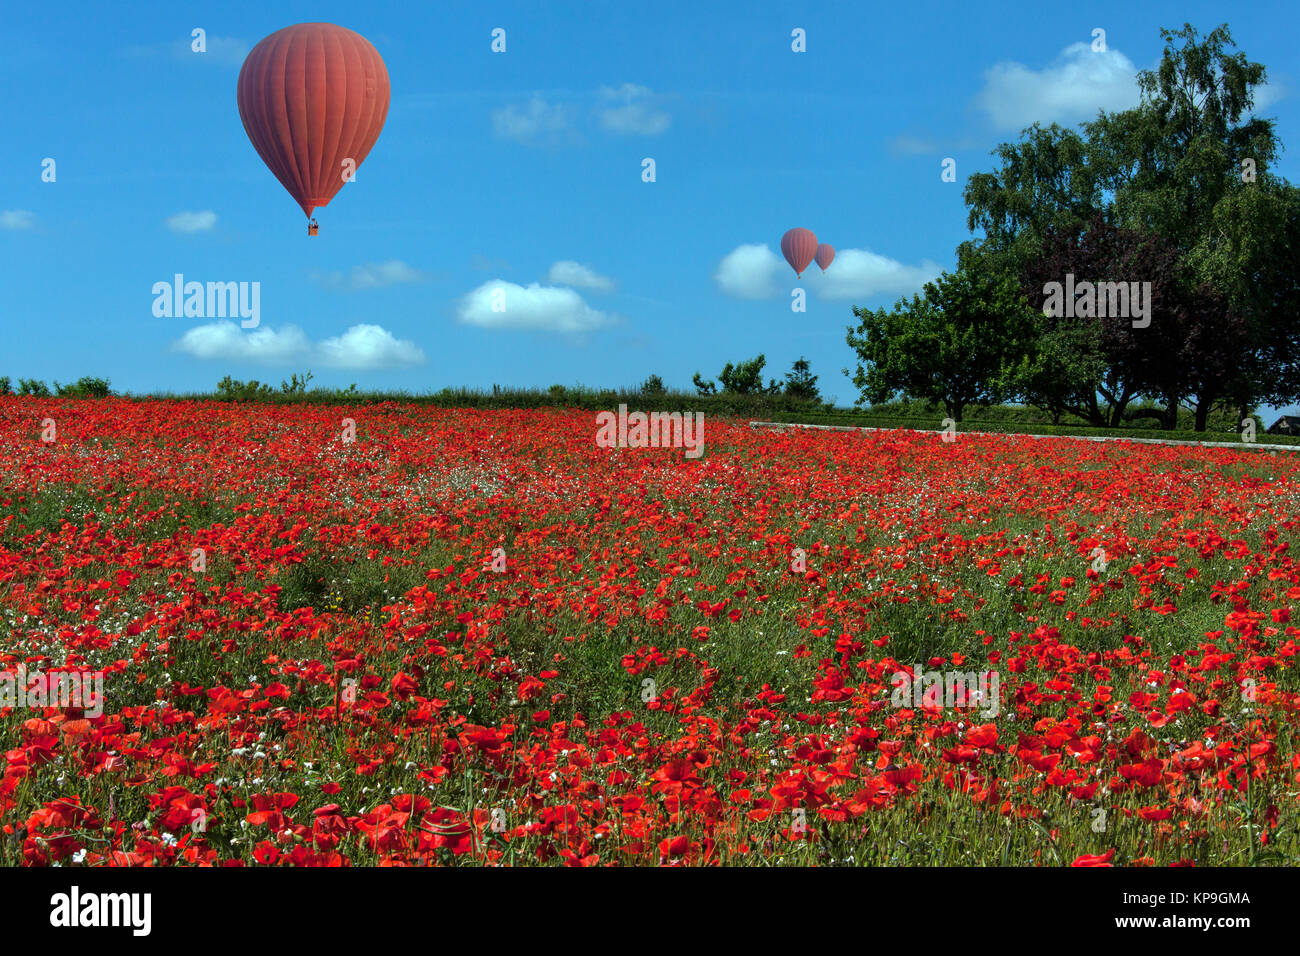 Hot air ballons drifting over a colorful field of poppies in the Yorkshire countryside in northeast England. - Stock Image